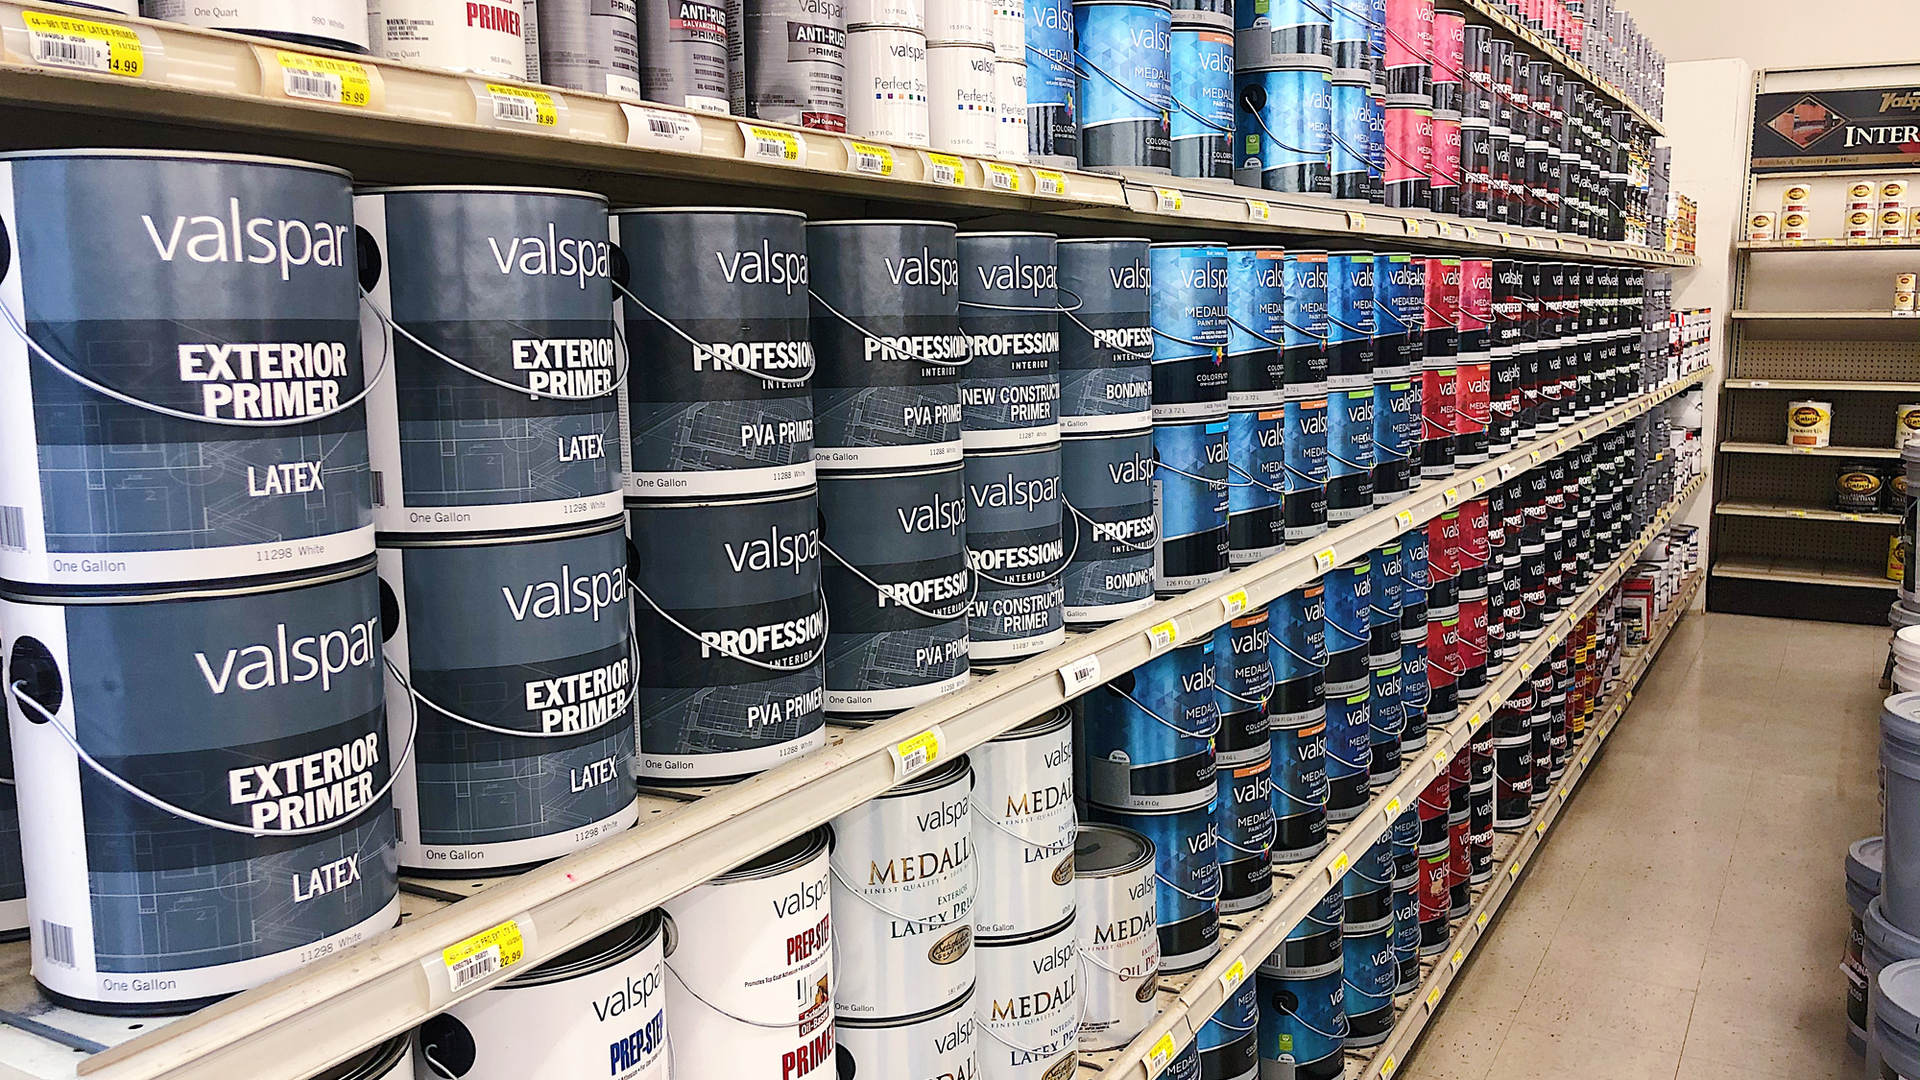 ALVA PAINT SHELVES.JPG